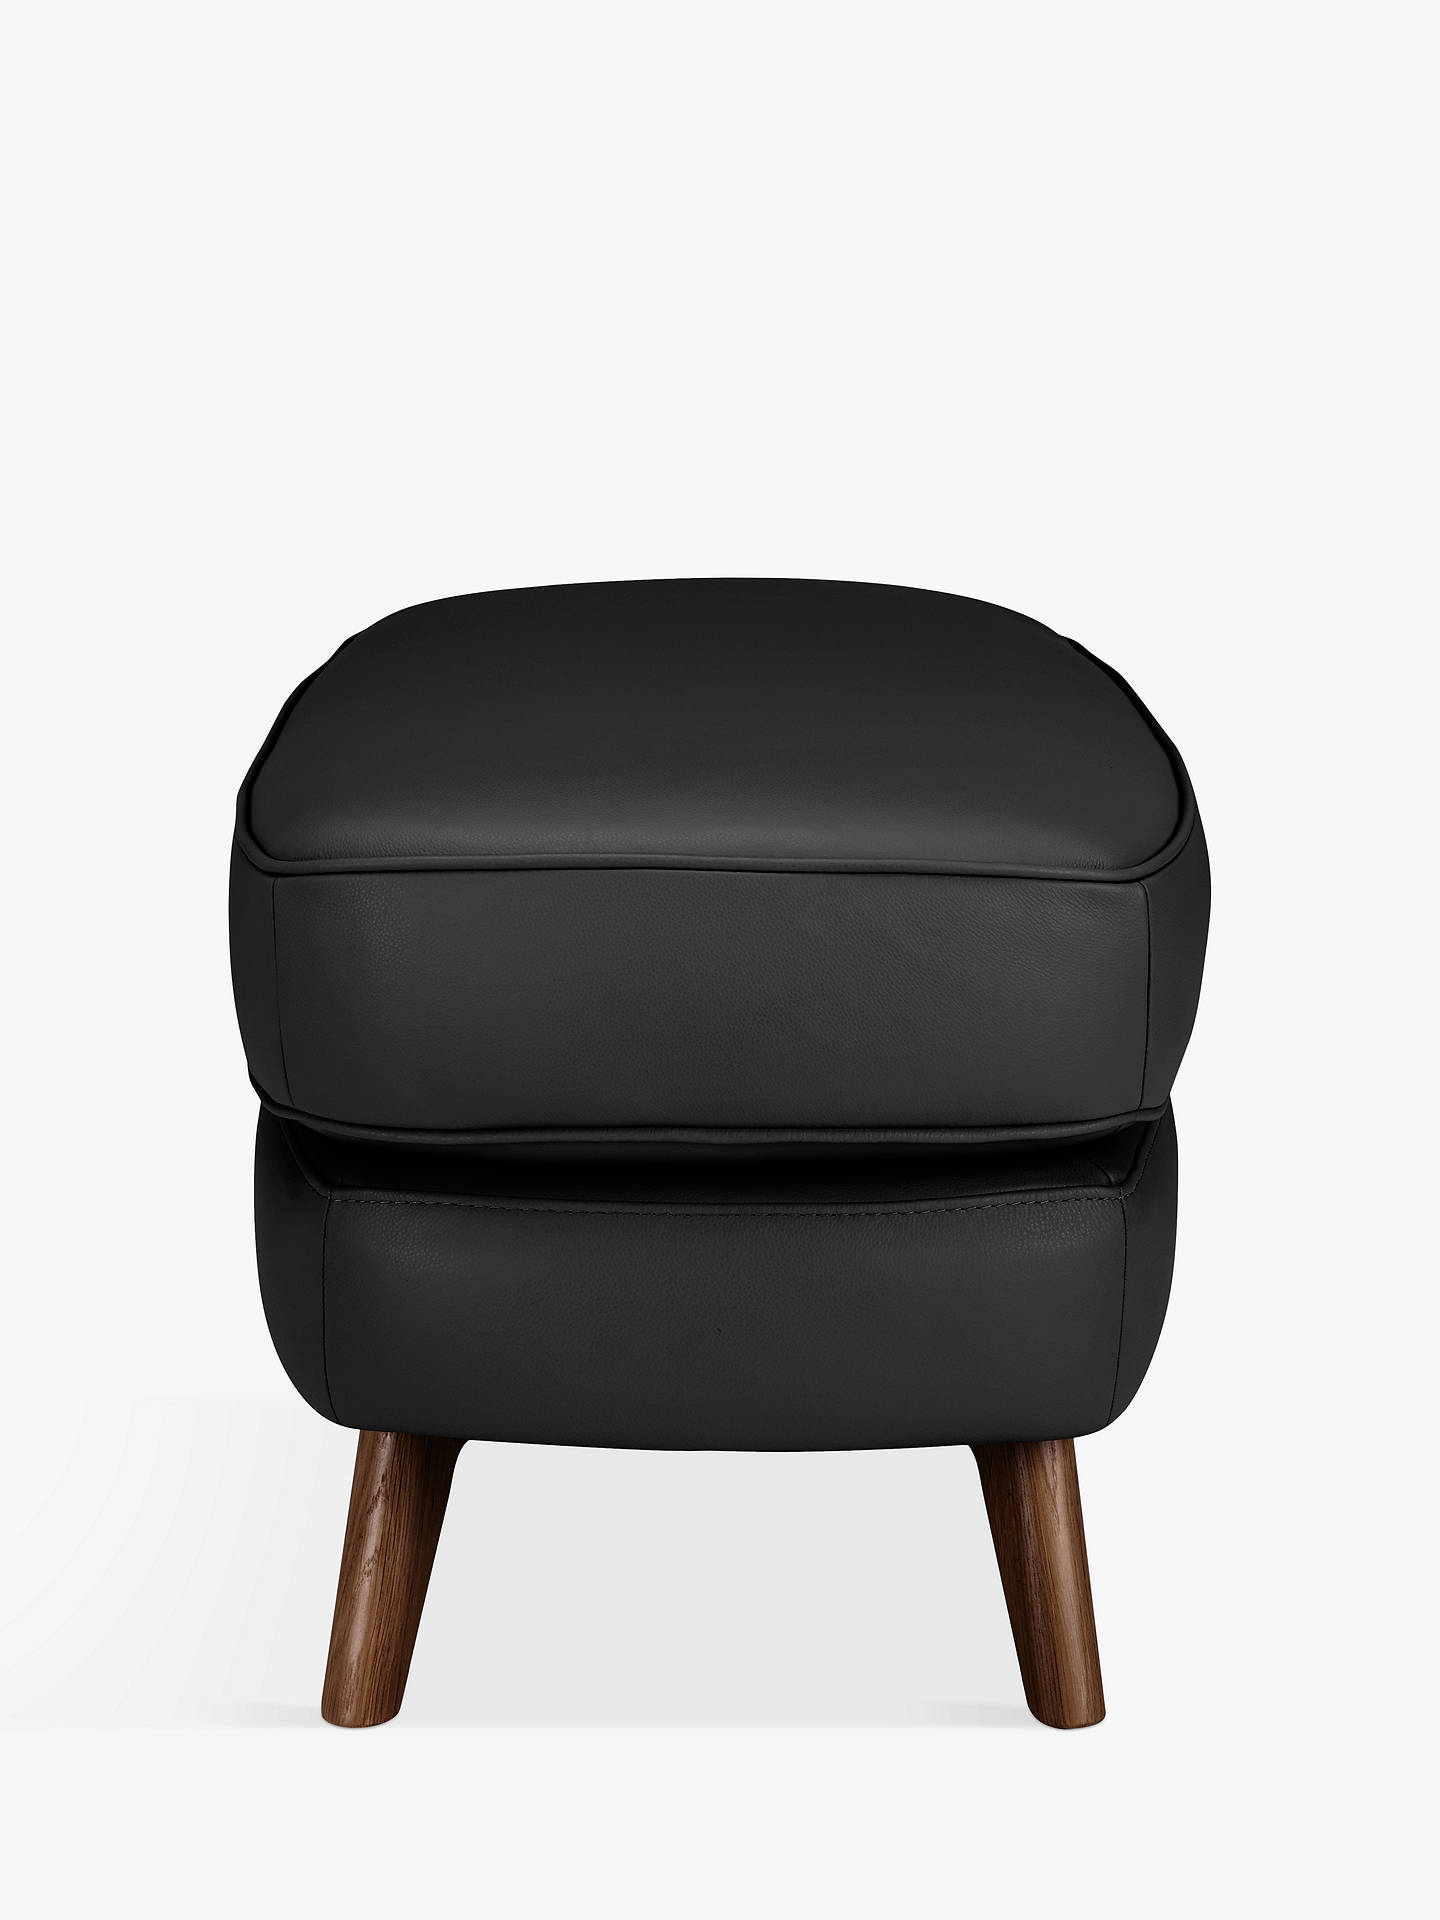 Buy John Lewis & Partners Barbican Leather Footstool, Dark Leg, Contempo Black Online at johnlewis.com